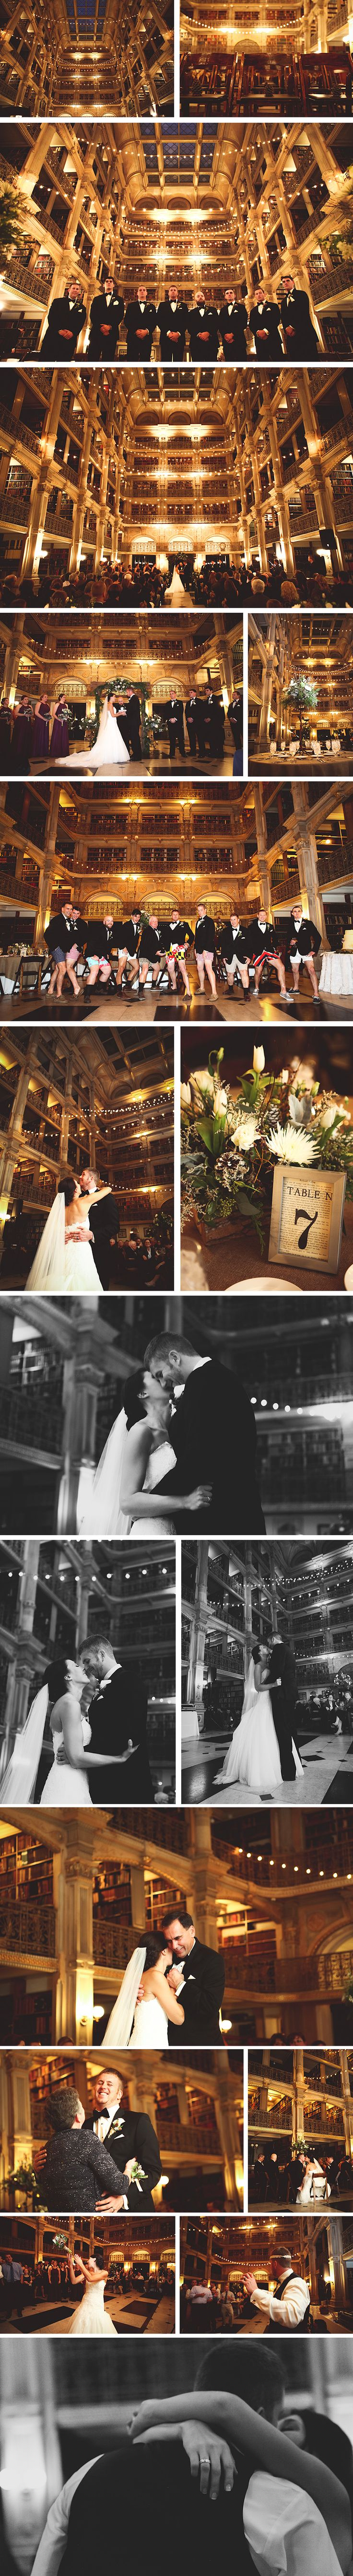 George Peabody Library Historic Baltimore Maryland Wedding Venue   Winter Wedding Cafe Lights Ceremony Literary  peabodyevents.library.jhu.edu